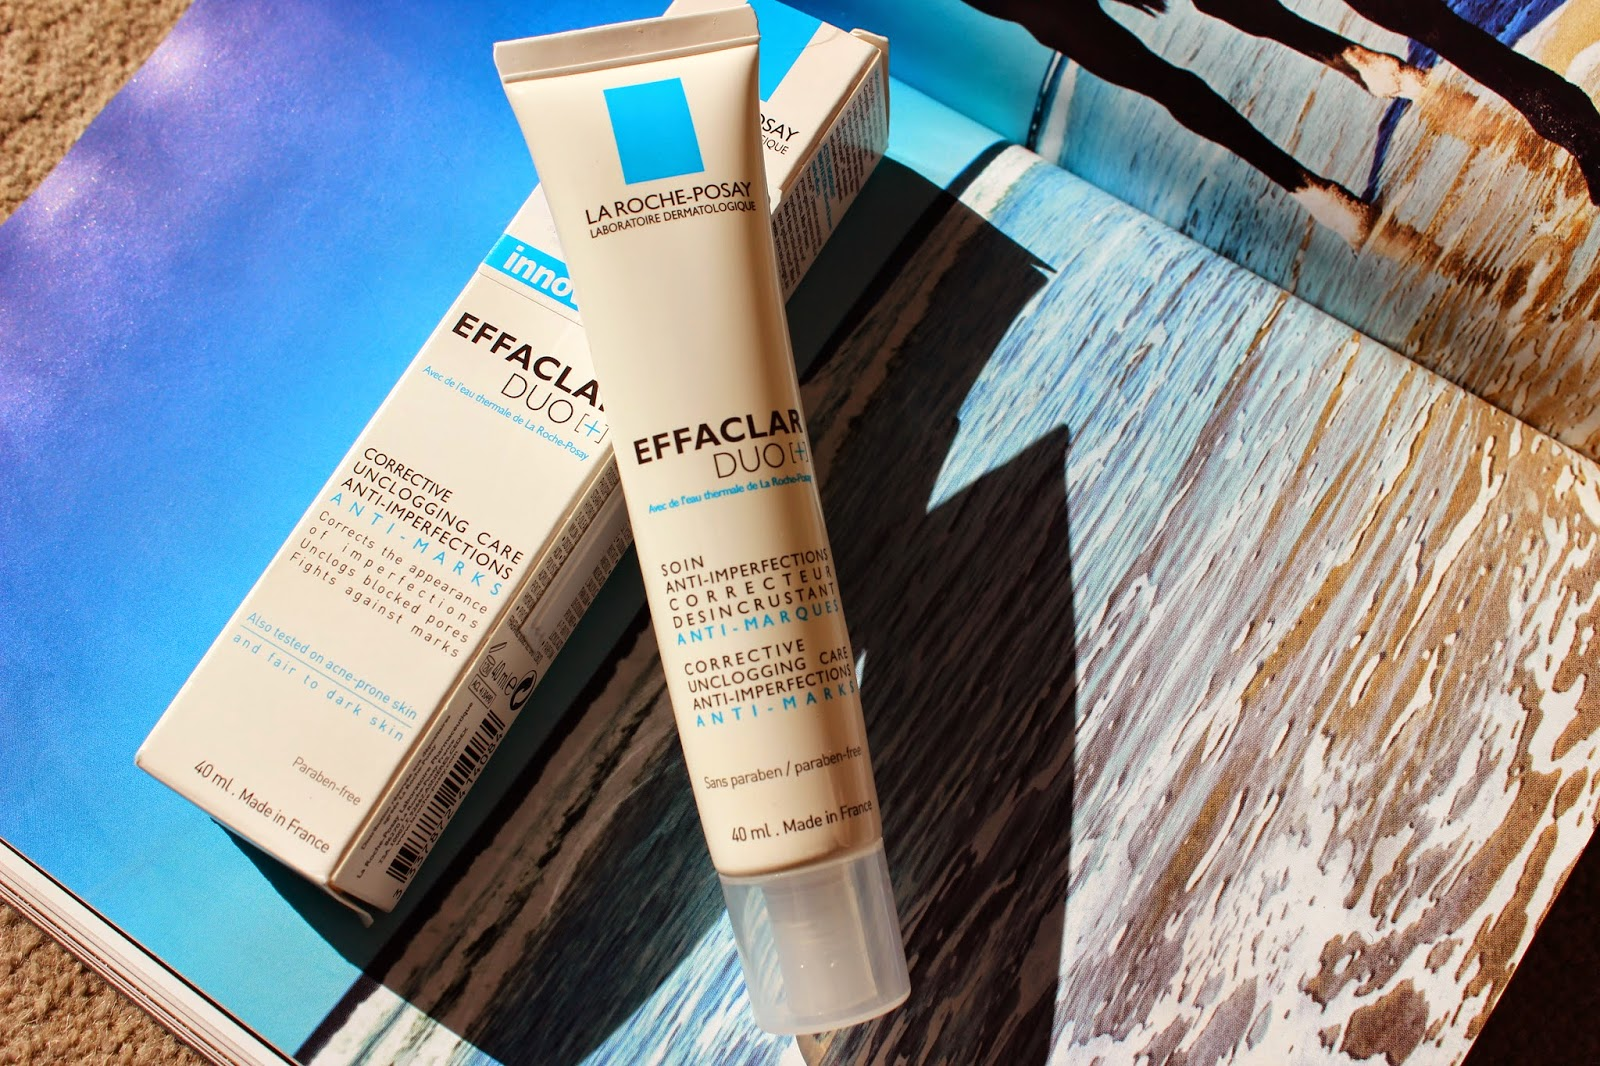 La Roche Posay Effaclar Duo Plus [+] + blog review girl culture rosy cherrington french pharmany skincare